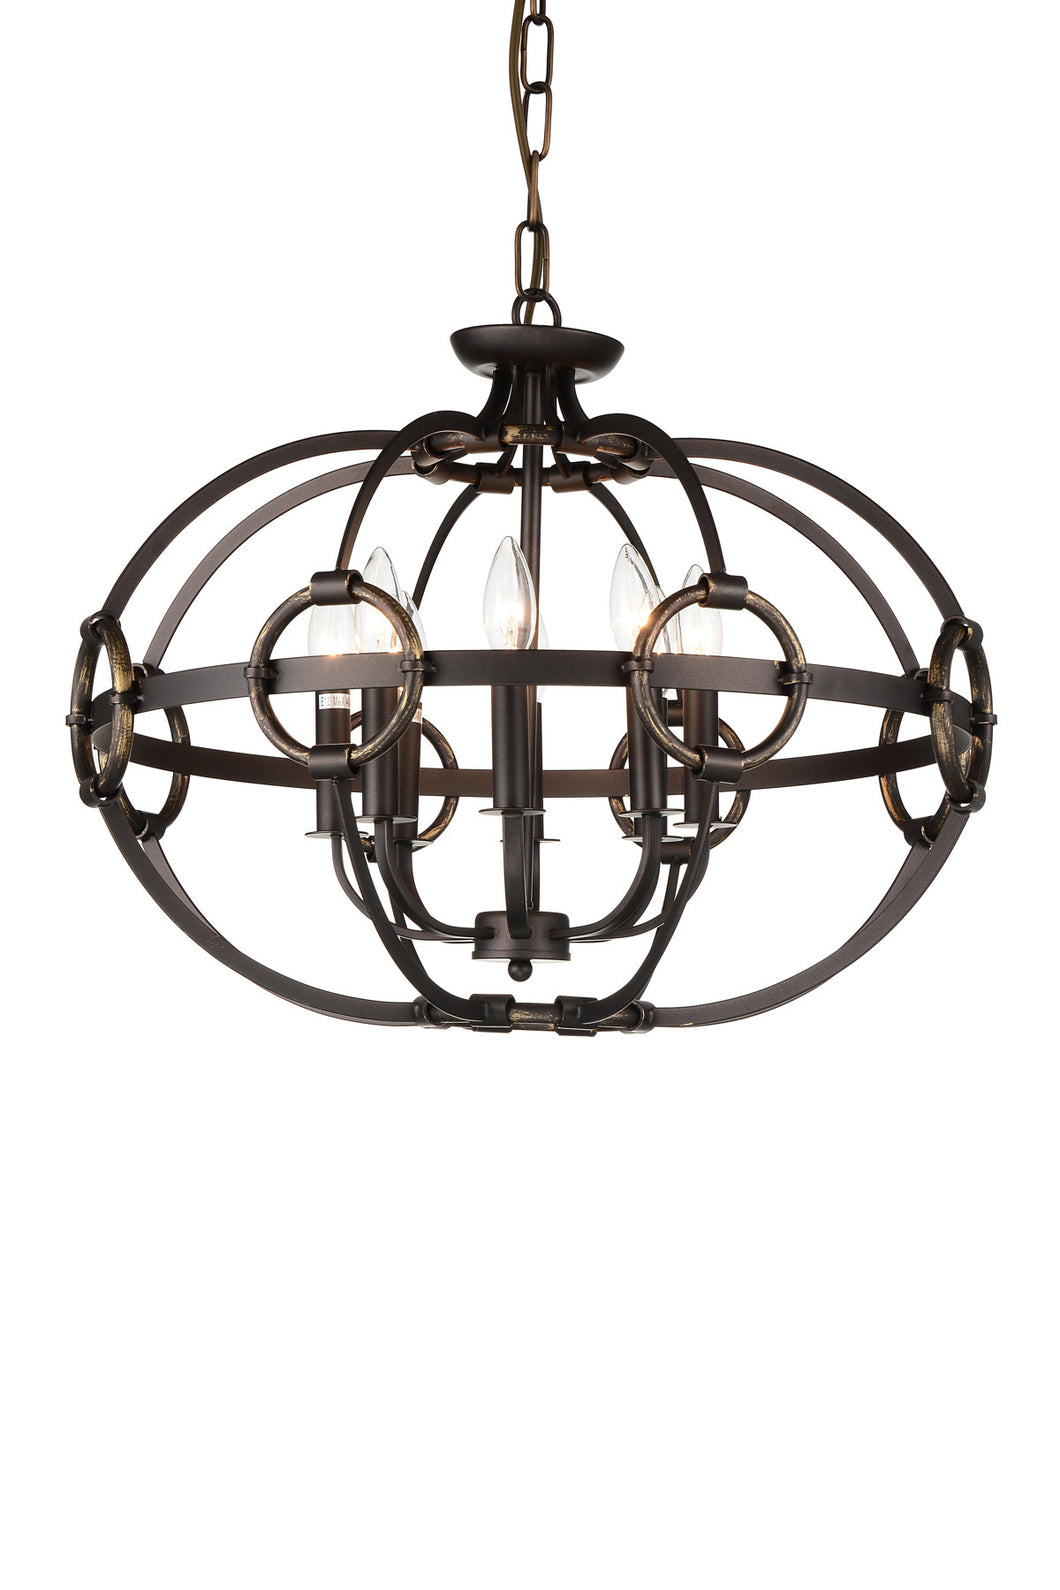 8 Light Up Chandelier with Brushed Golden Brown finish